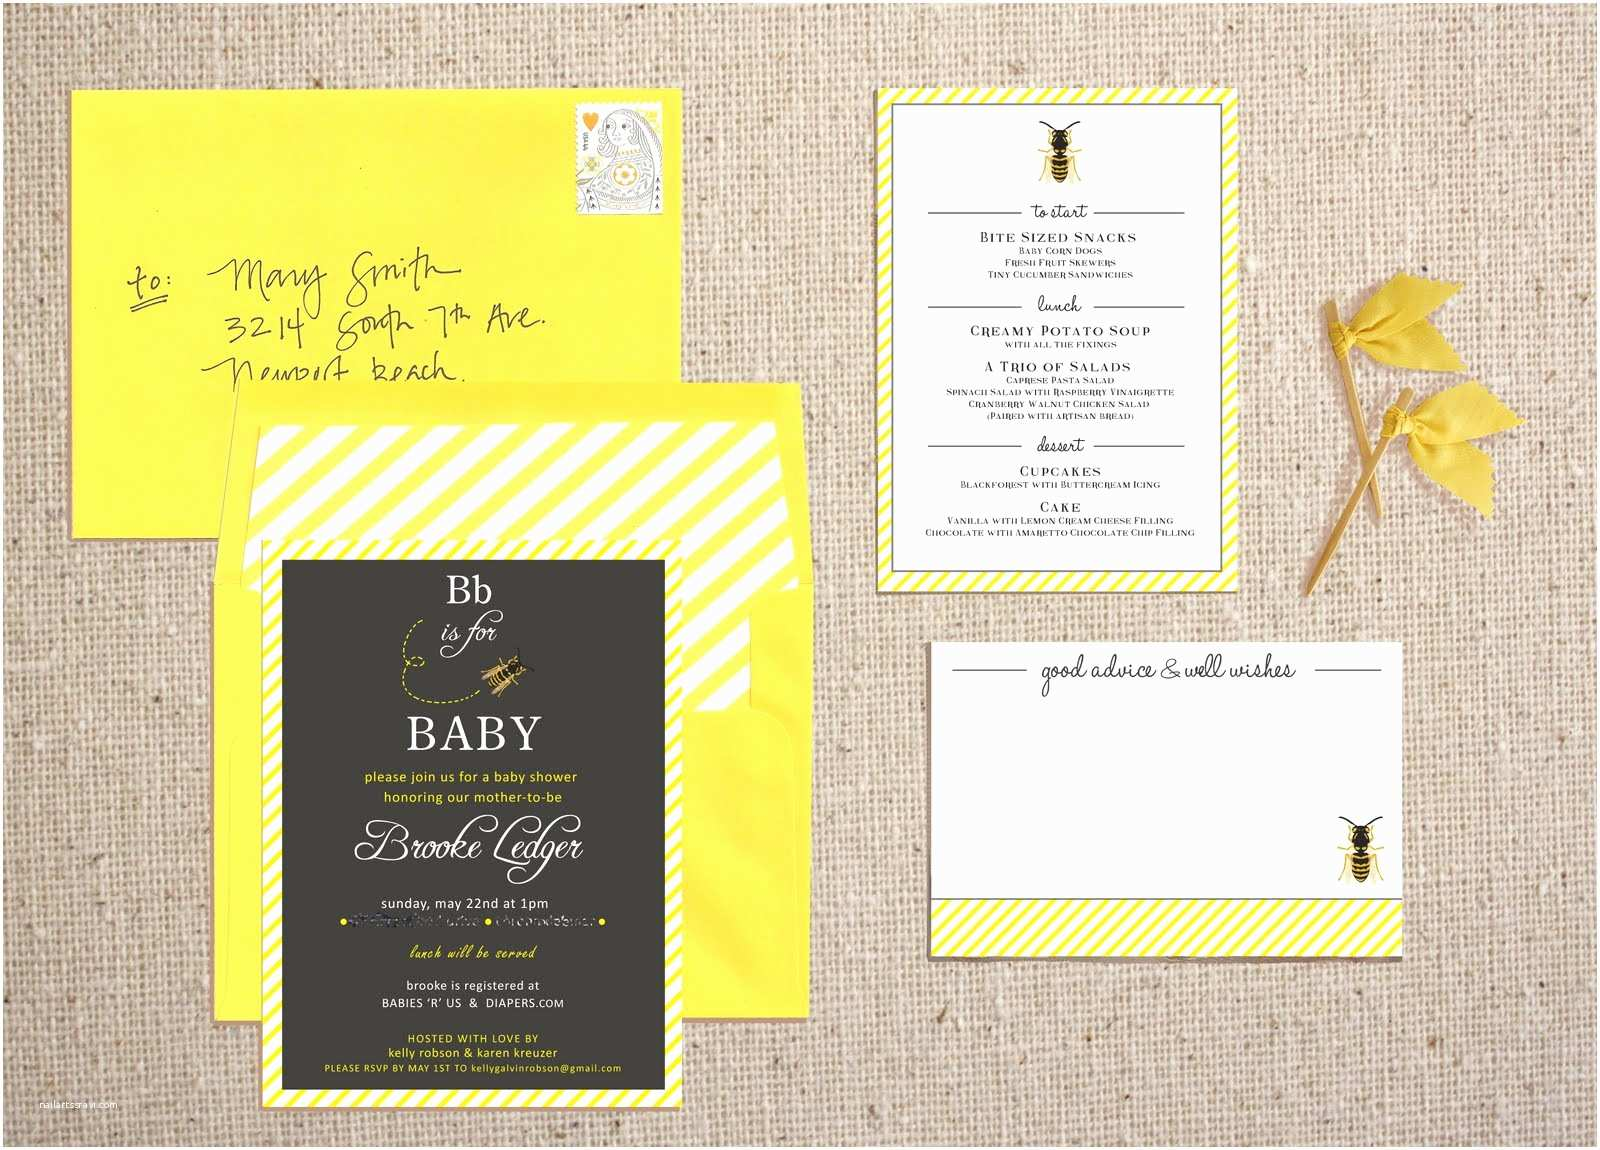 Bumble Bee Baby Shower Invitations Template Bumble Bee Baby Shower Invitations Wording